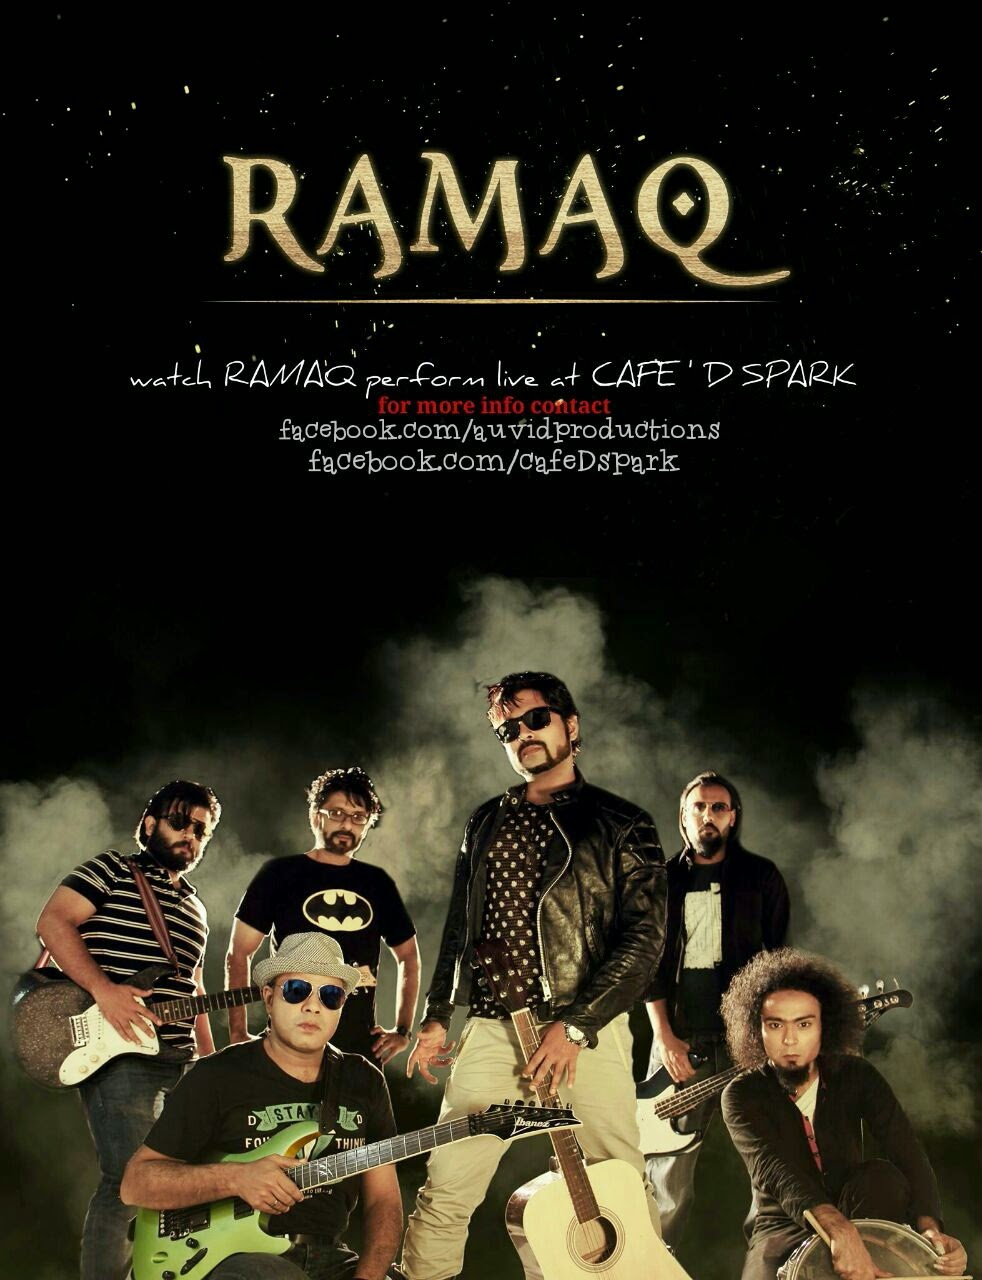 Watch RAMAQ perform live at Cafe D Spark